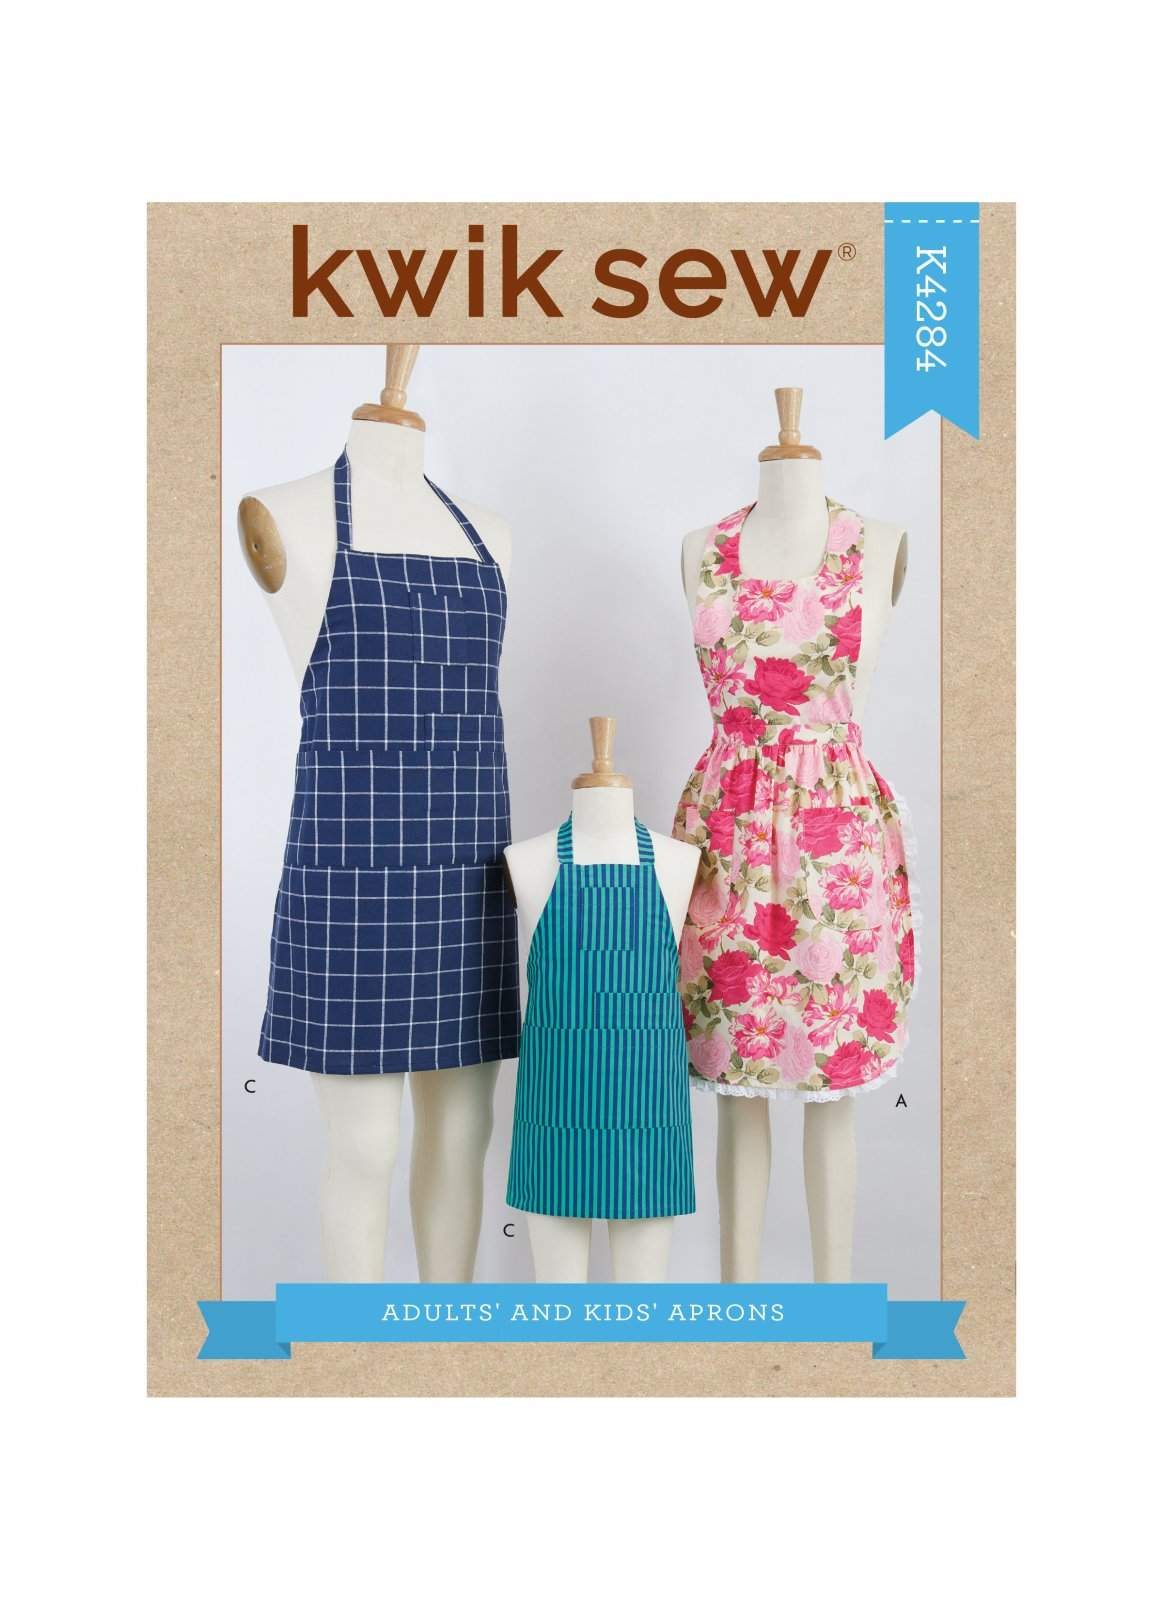 Kwik Sew K484 Adults and Kids Aprons Pattern